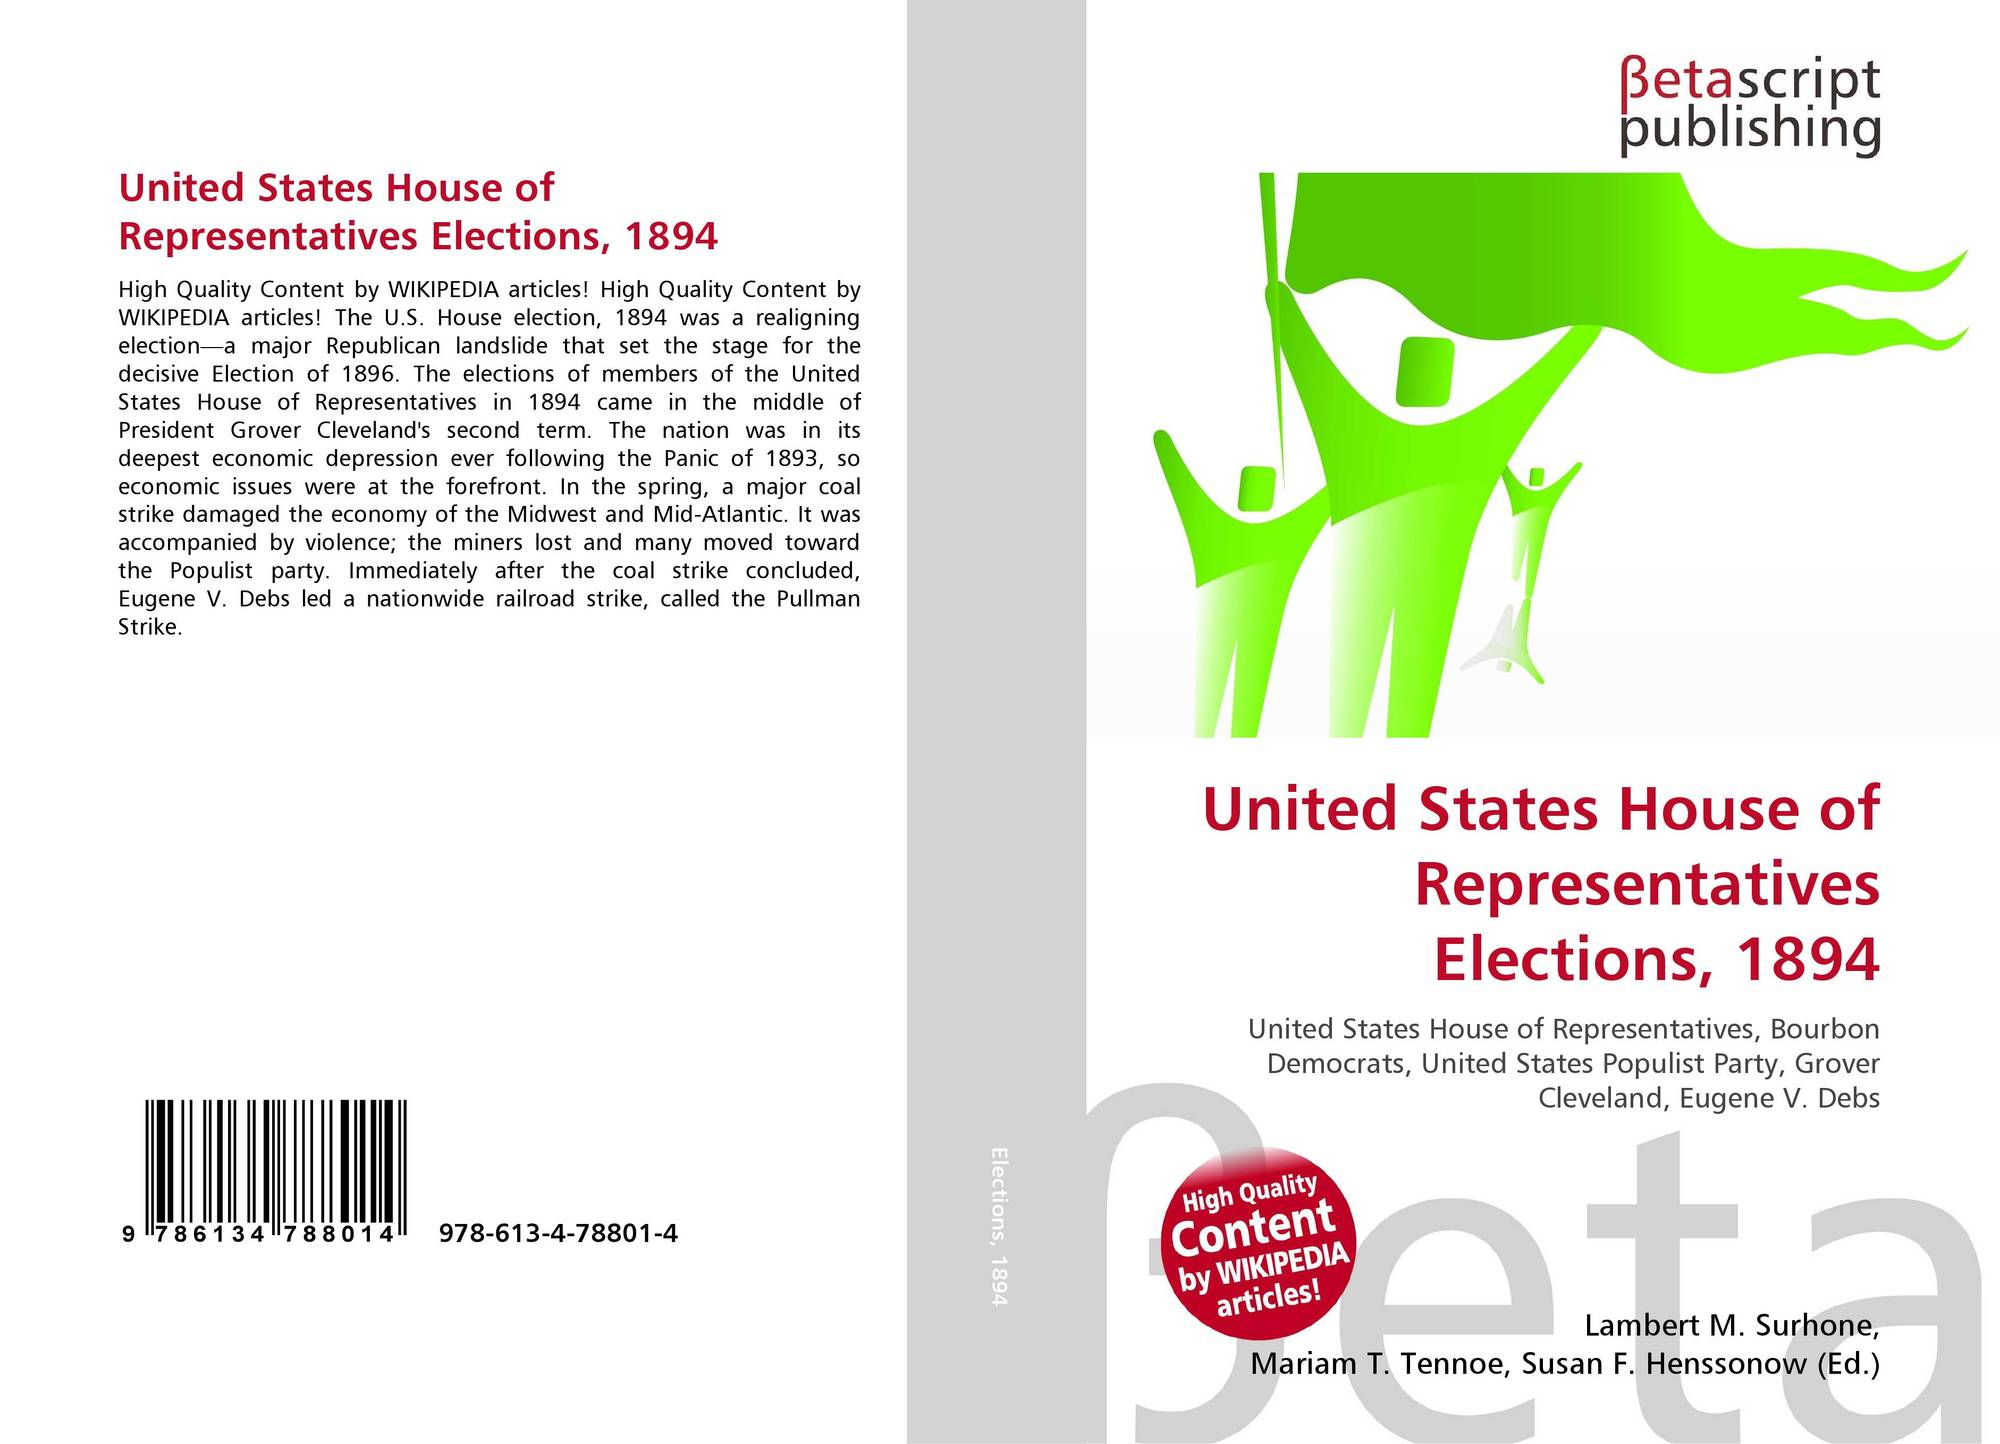 1894 United States House of Representatives elections